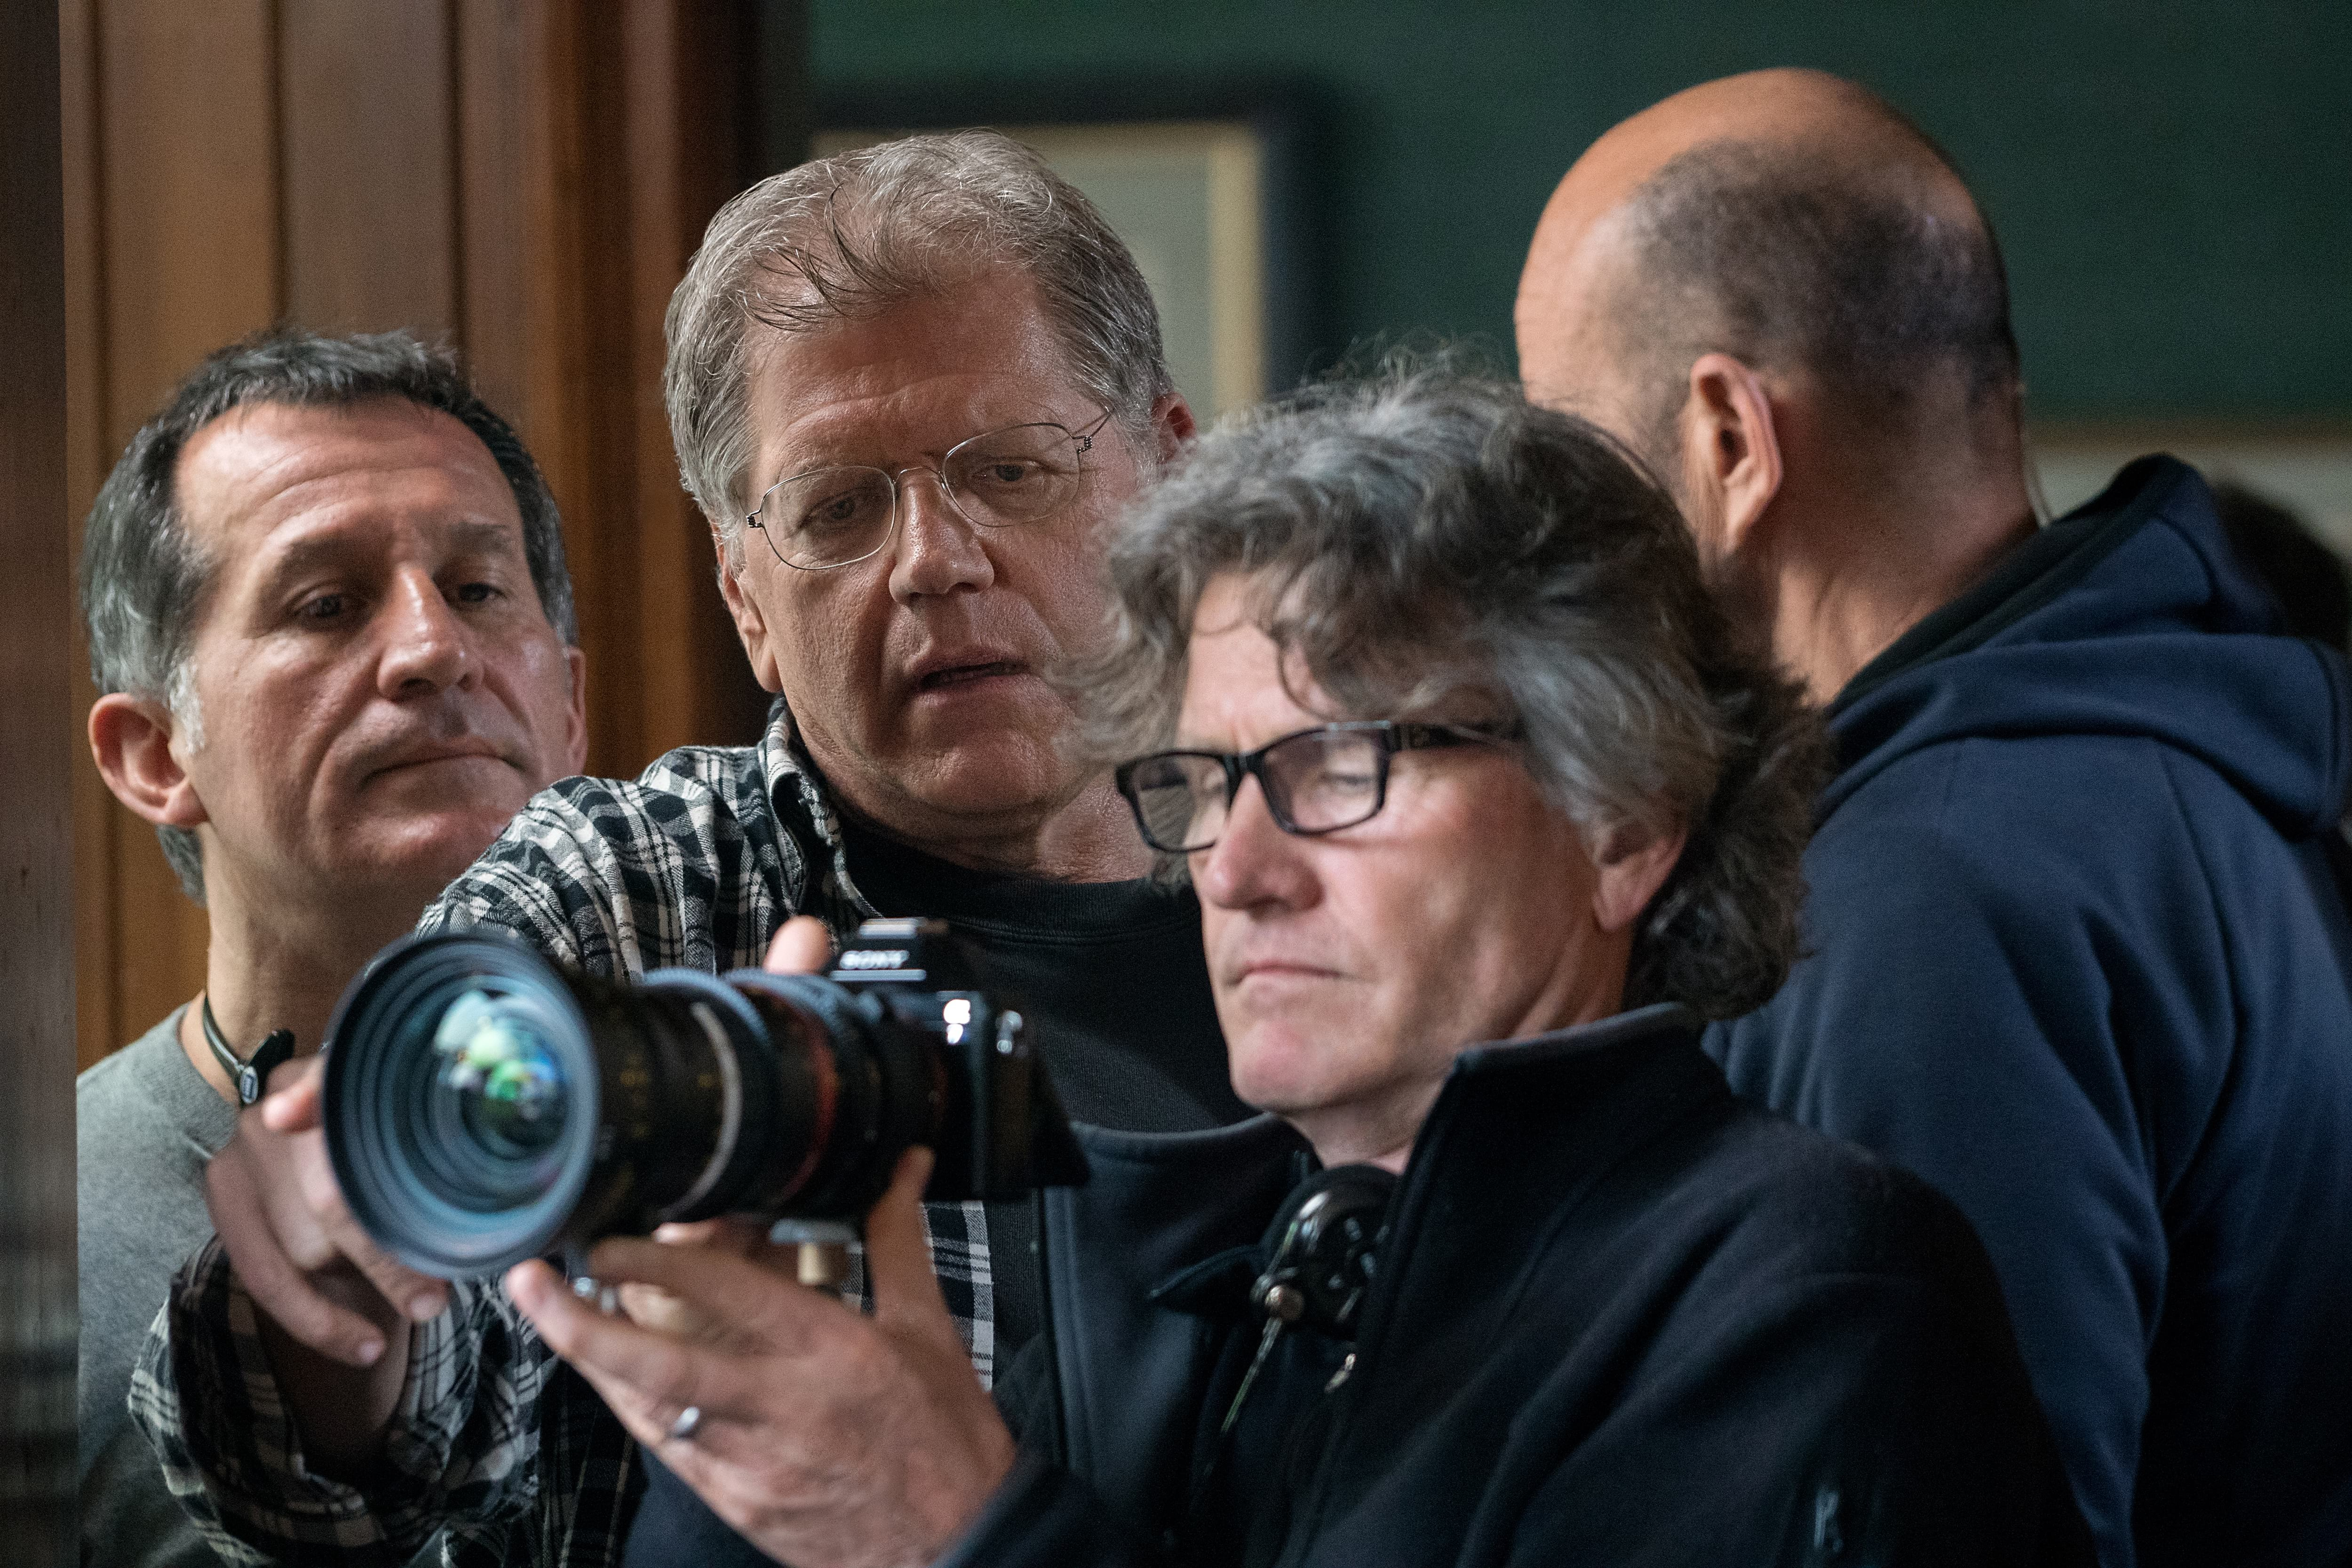 Director Robert Zemeckis and director of photography Don Burgess, ASC on the set of Allied.